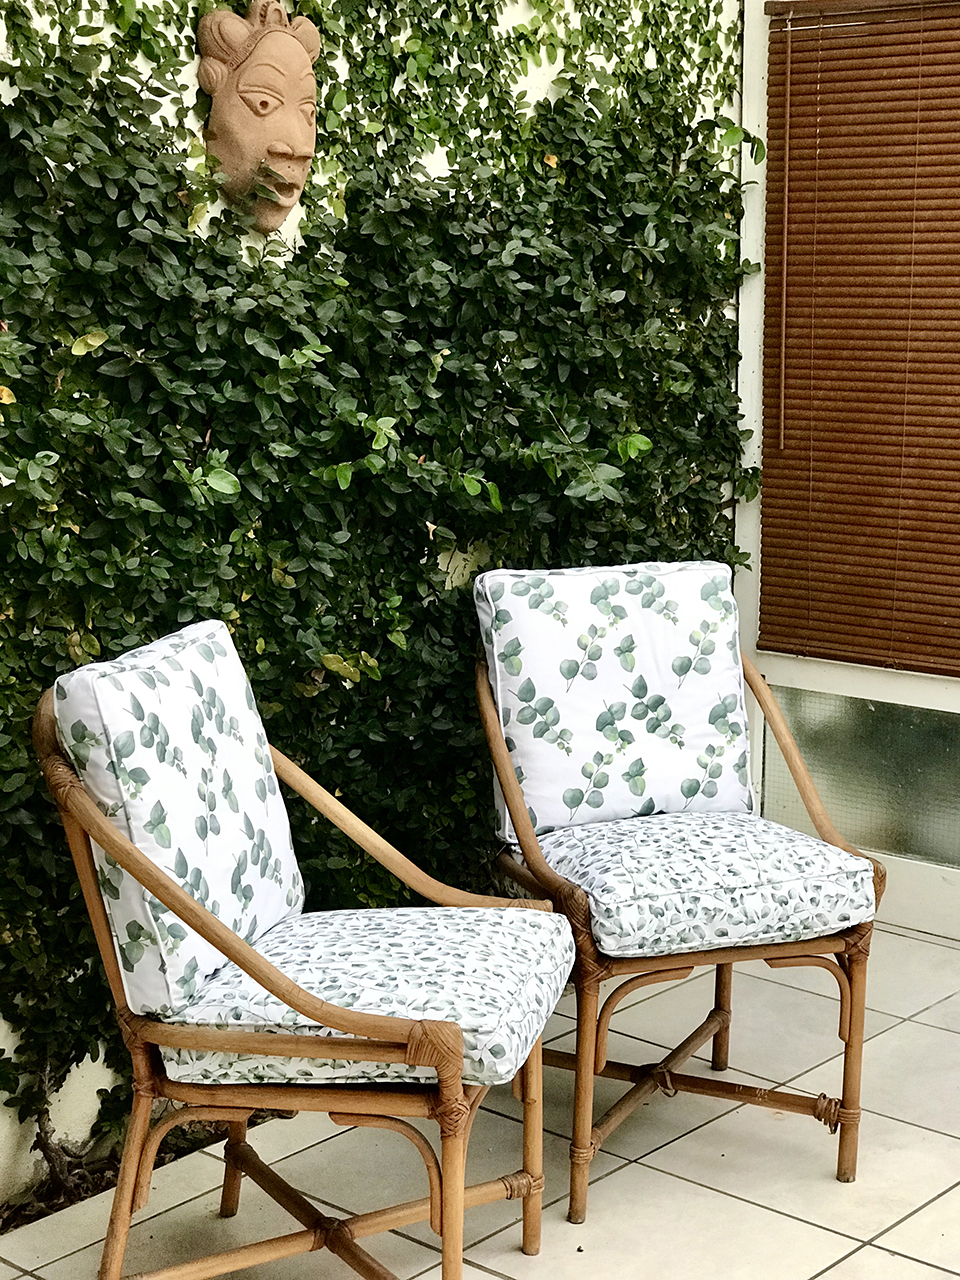 chairs in courtyard